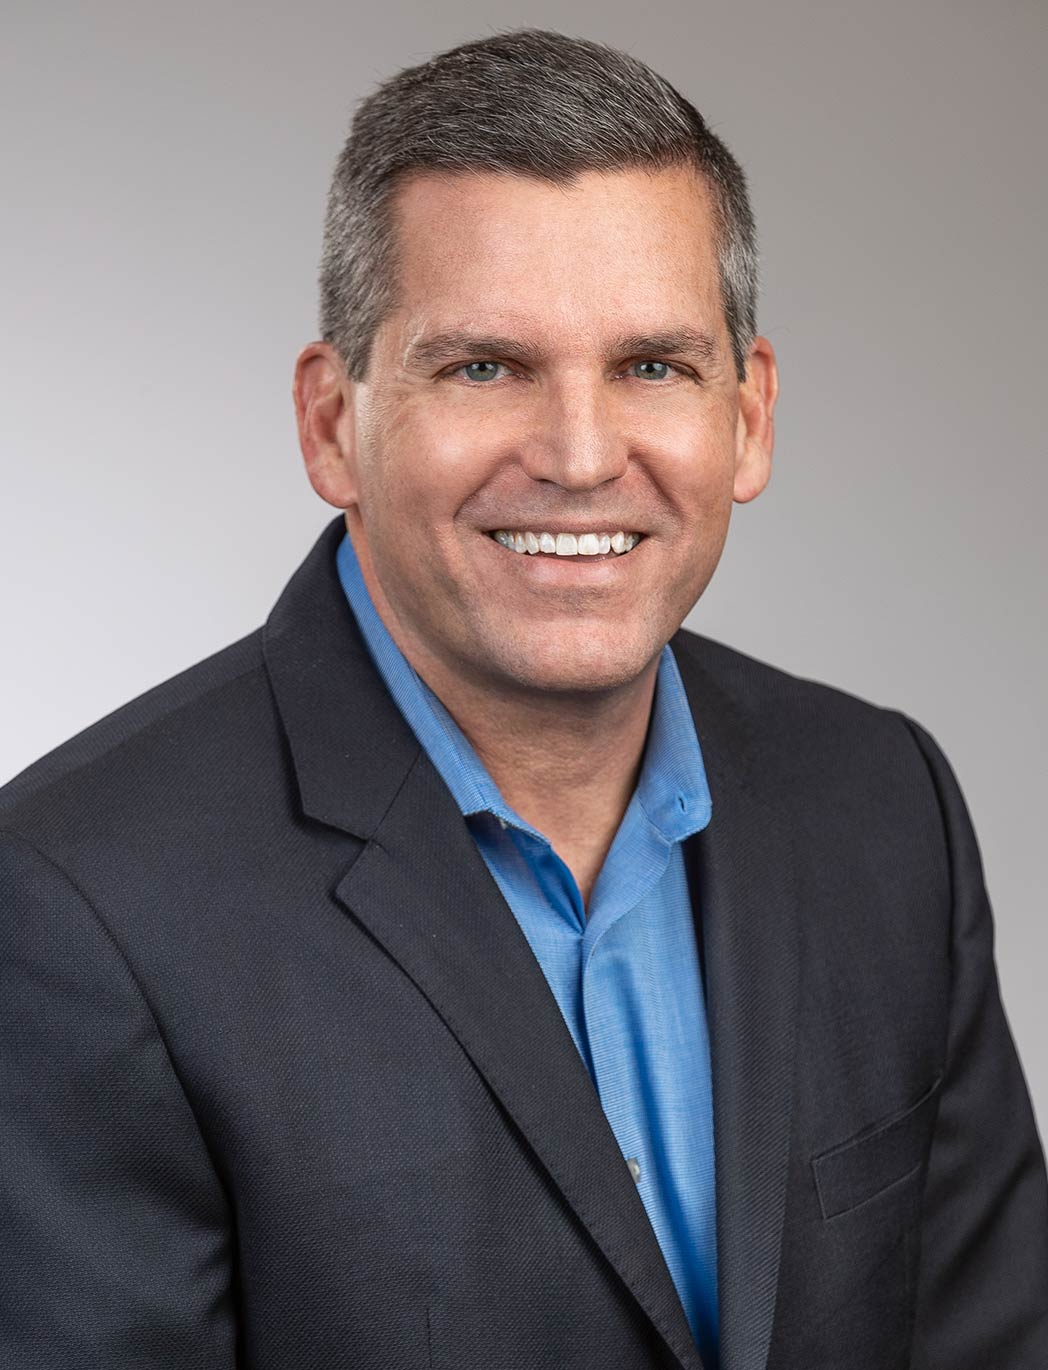 Mike Suriano, CFO